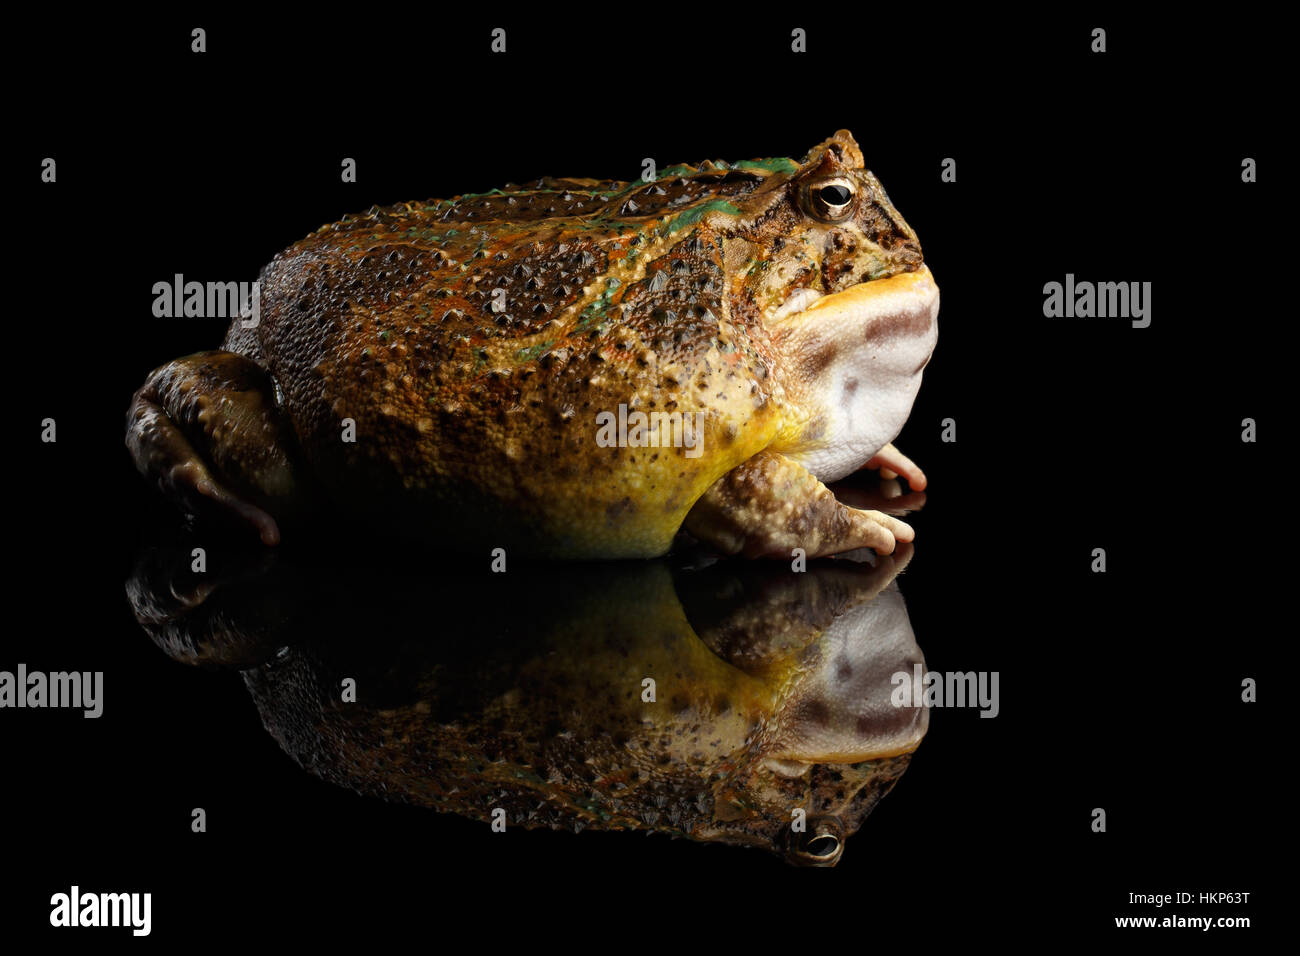 Argentine Horned Frog or Pac-man, Ceratophrys ornata - Stock Image